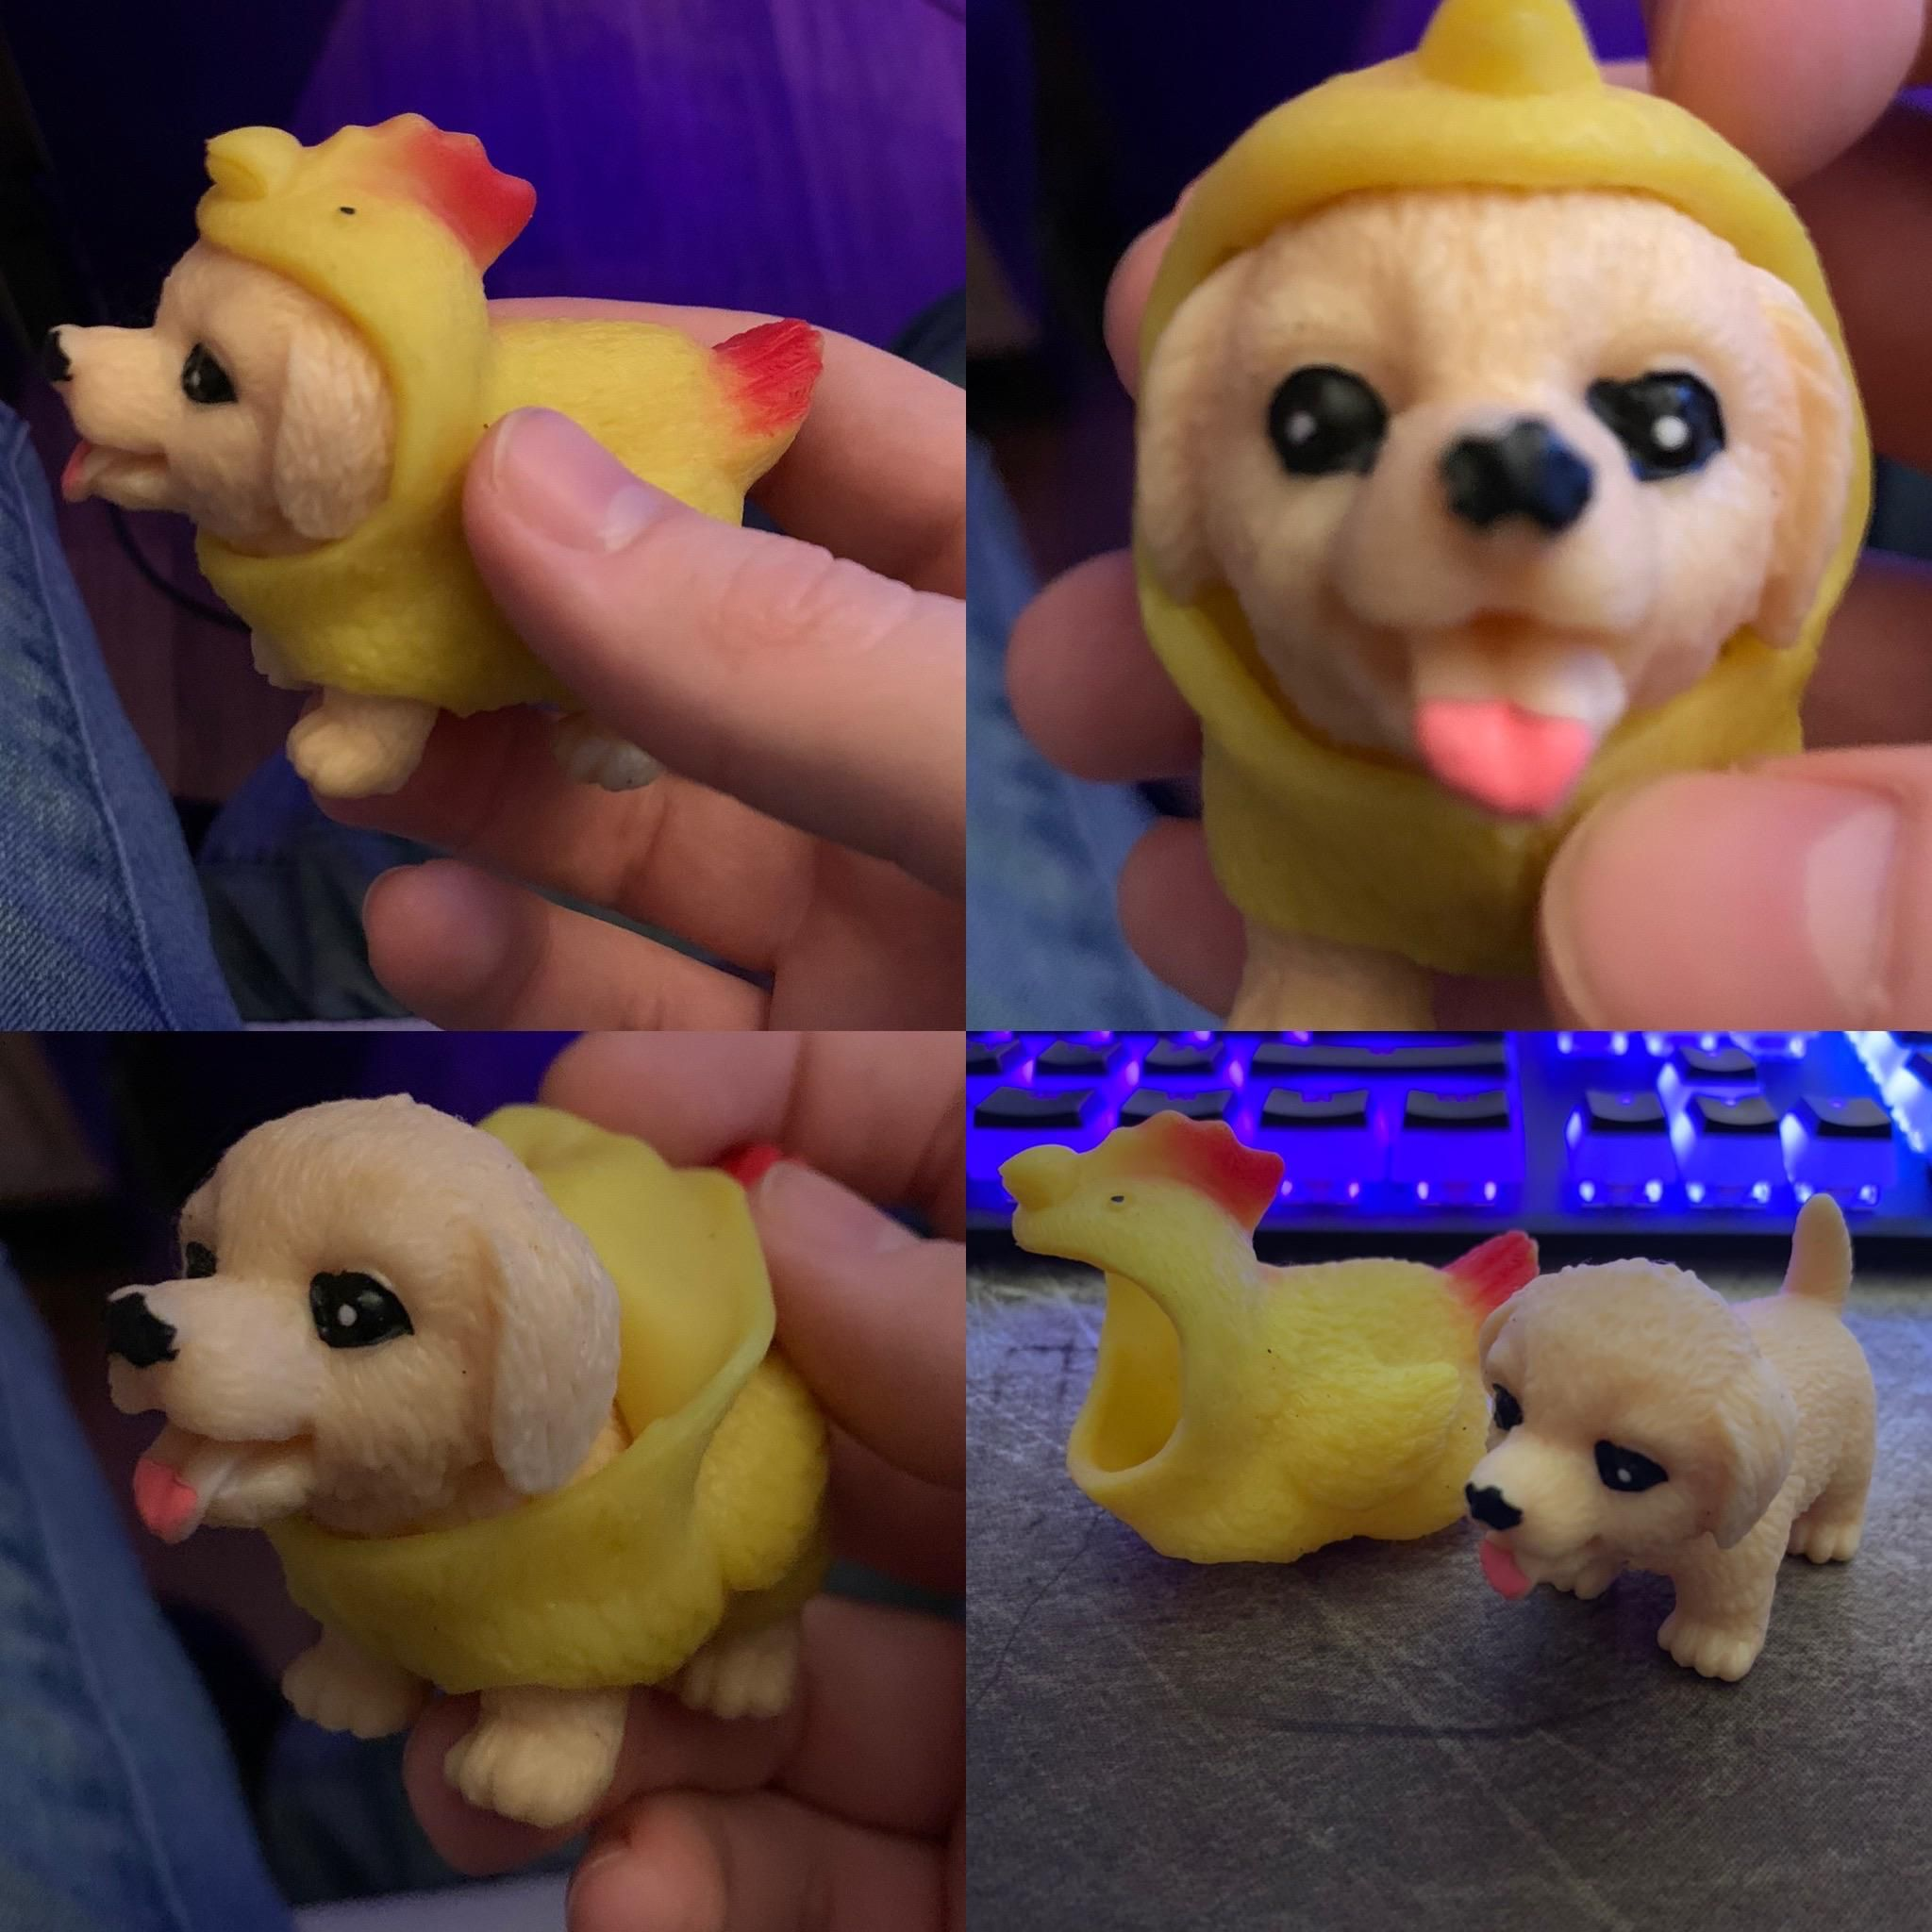 Just found this little rubber dog toy with a fully removable chicken suit in my house, it's wild